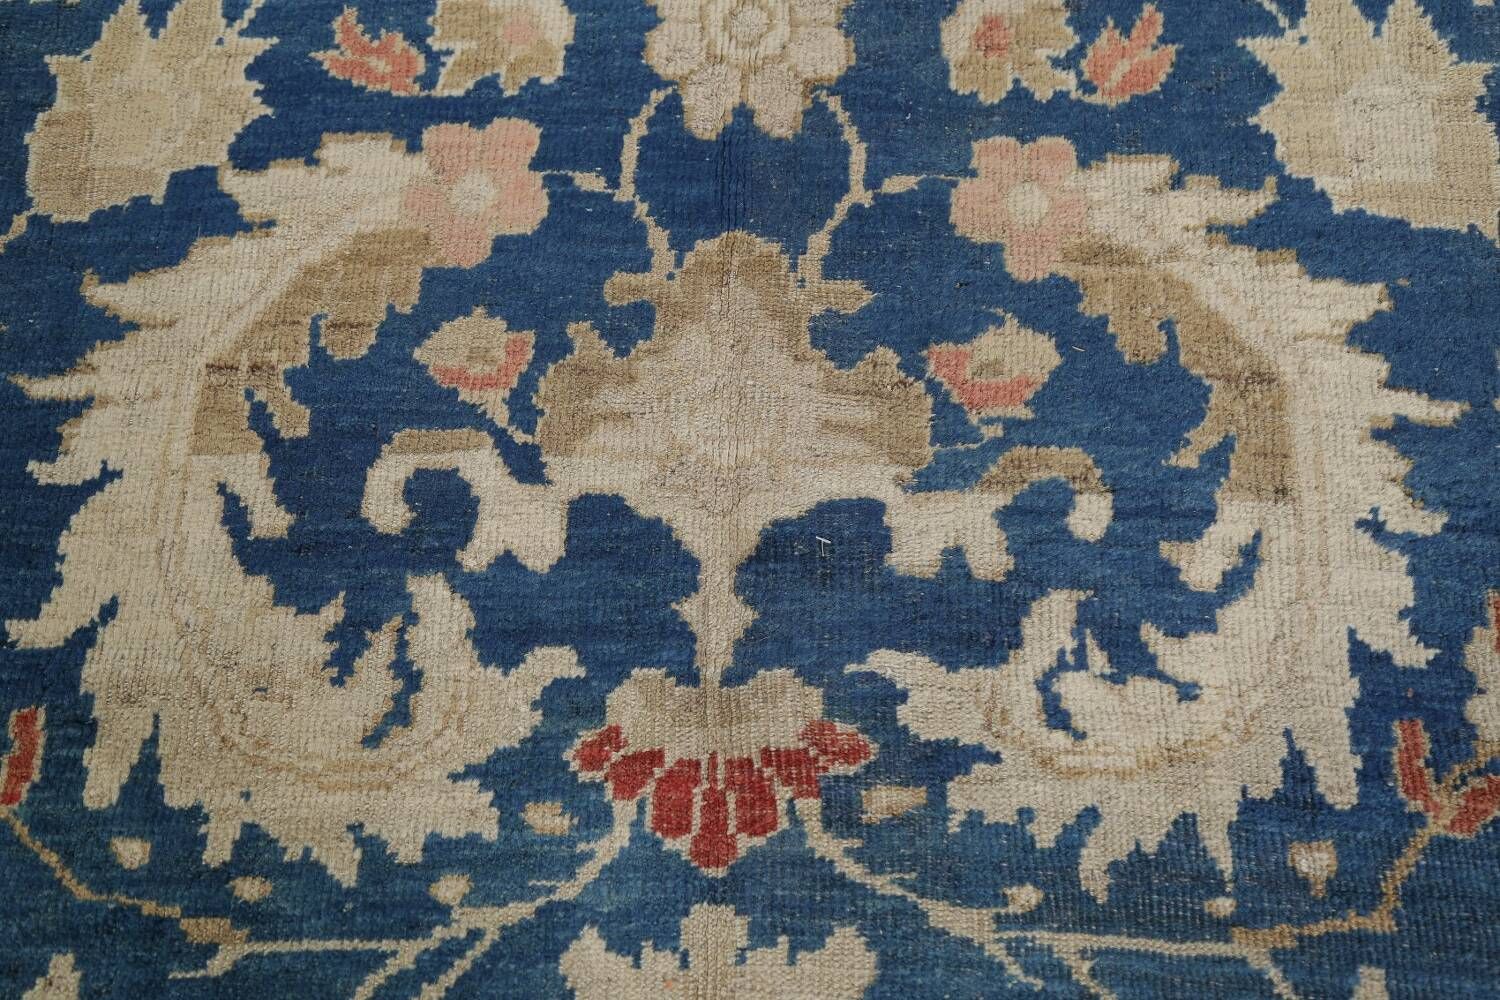 Antique Floral Sultanabad Persian Area Rug 10x16 Large image 11